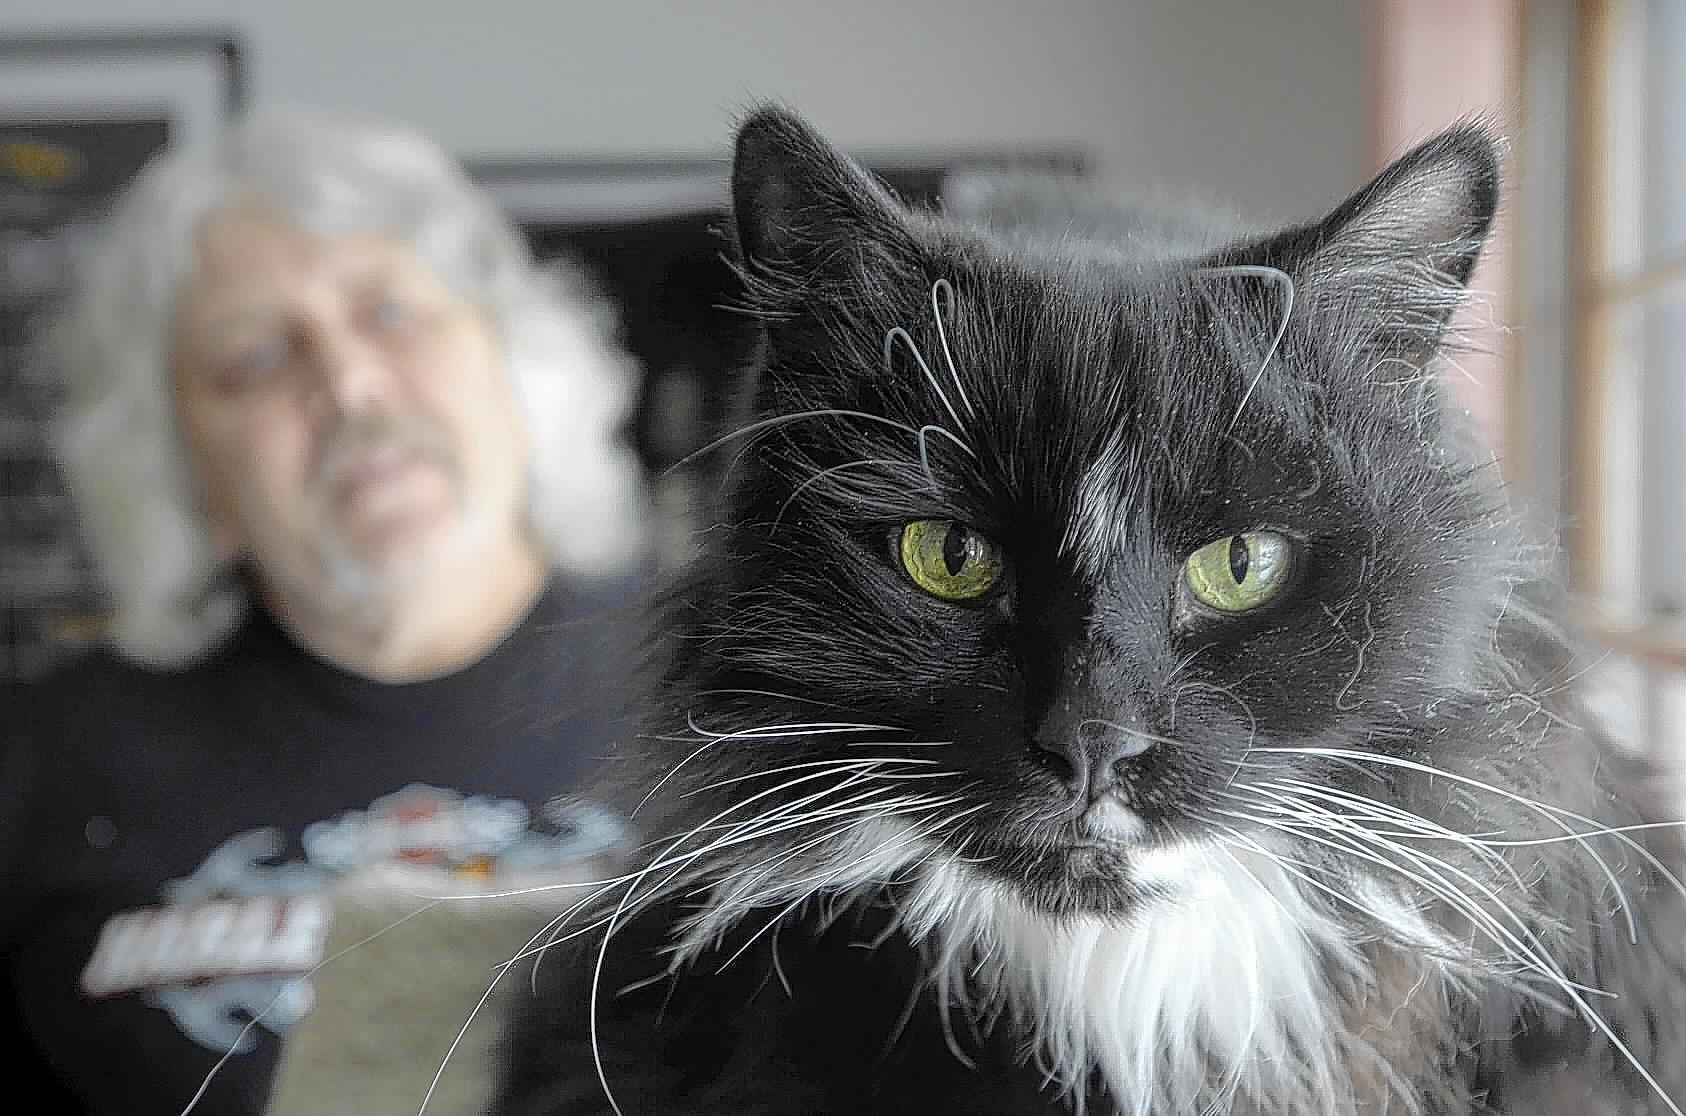 """They're just not animal friendly. What if it was a human?"" asks Dan Quartin of Newington in reference to an incident on Christmas Eve when he tried buying insulin and syringes for his diabetic cat, Rusty, but was refused by CVS at its Elmwood store."